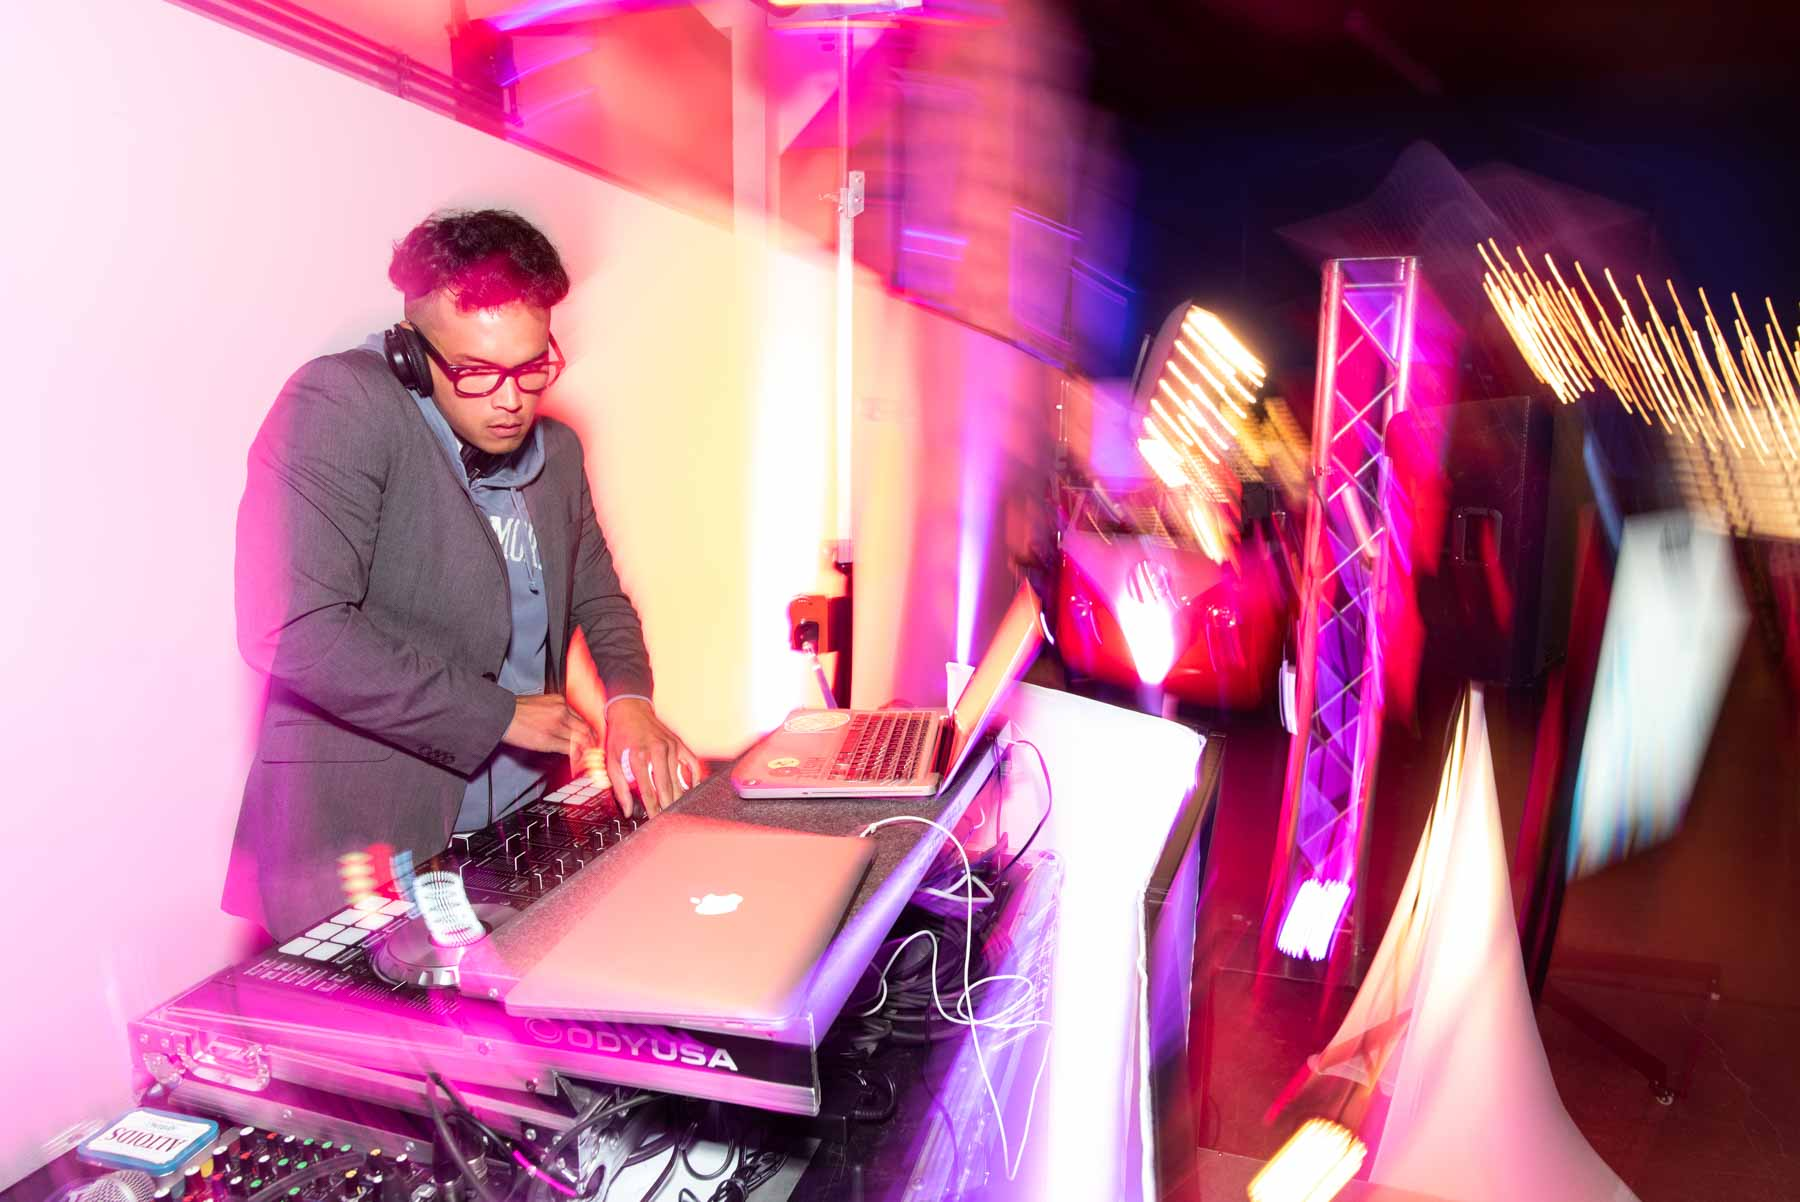 022_colorbloq_sanfrancisco_event_photography.jpg